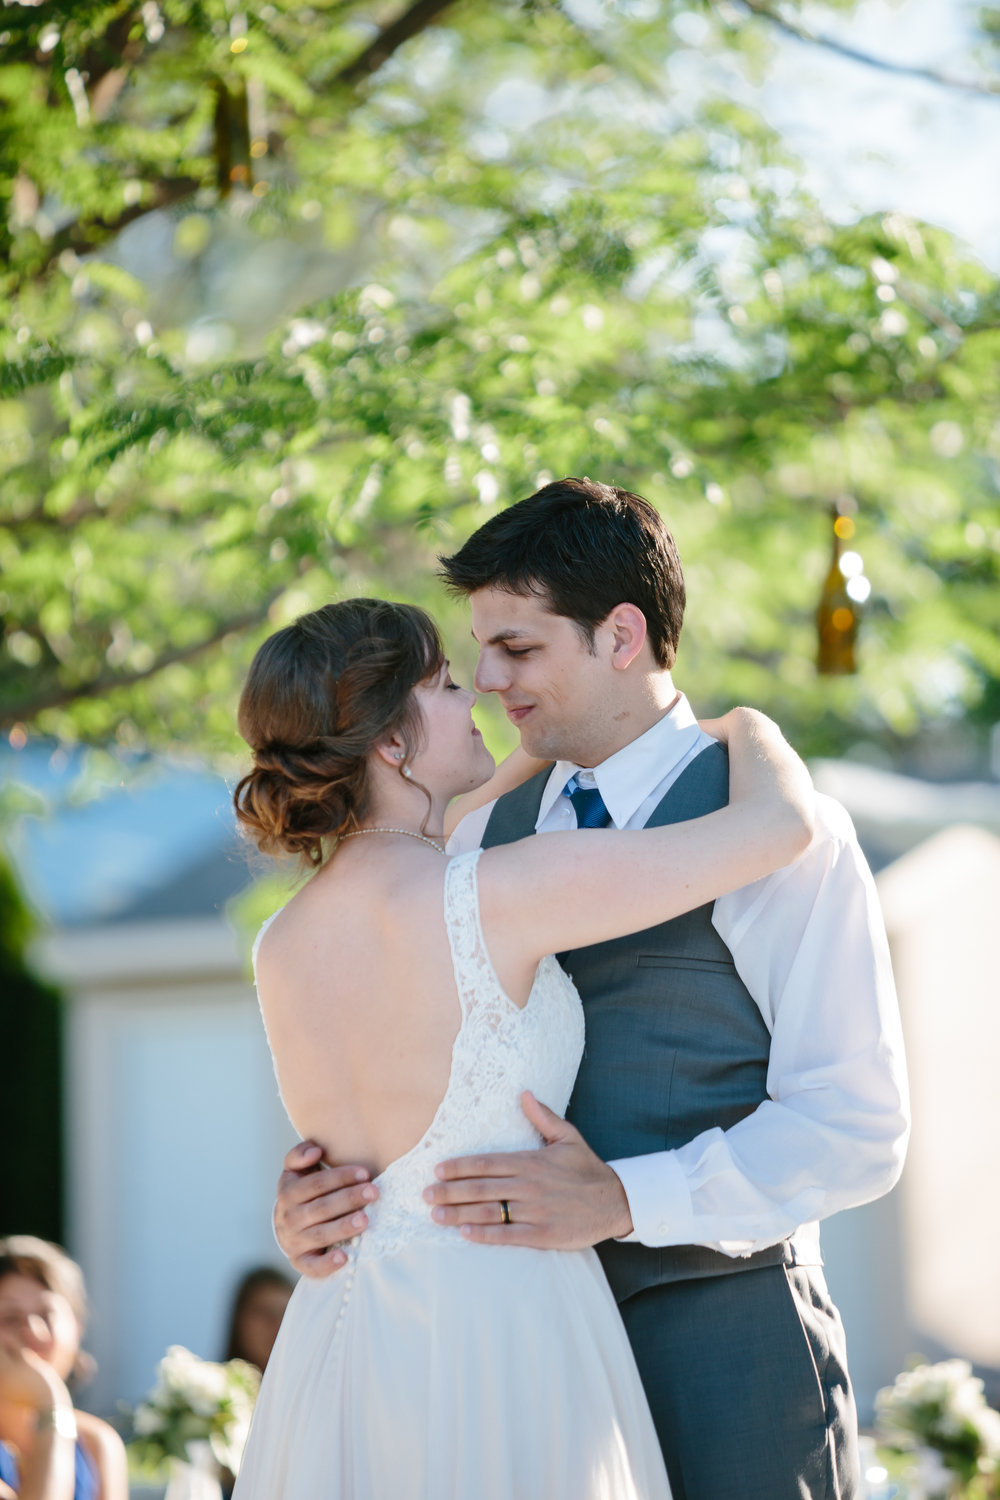 Jordan & Shantel Married - Idaho - Corrie Mick Photography-292.jpg